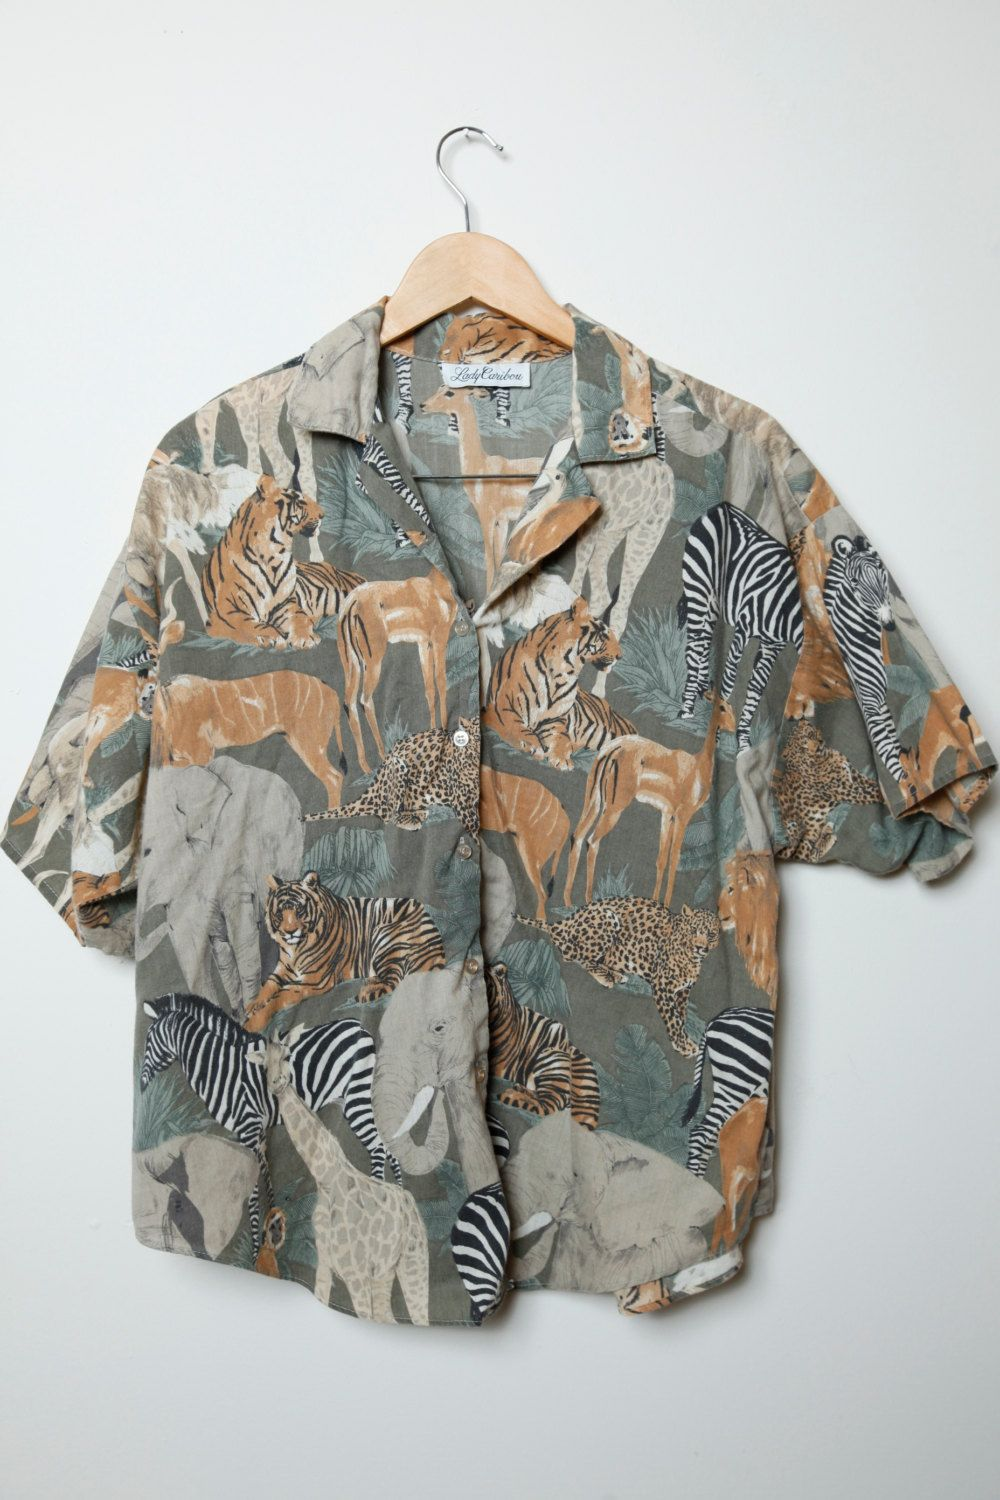 a8a22353 Awesome Vintage 80s/90s Safari Wild Animal Jungle Print Short Sleeve Button  Up Shirt Unisex by LipstickDinosaur on Etsy